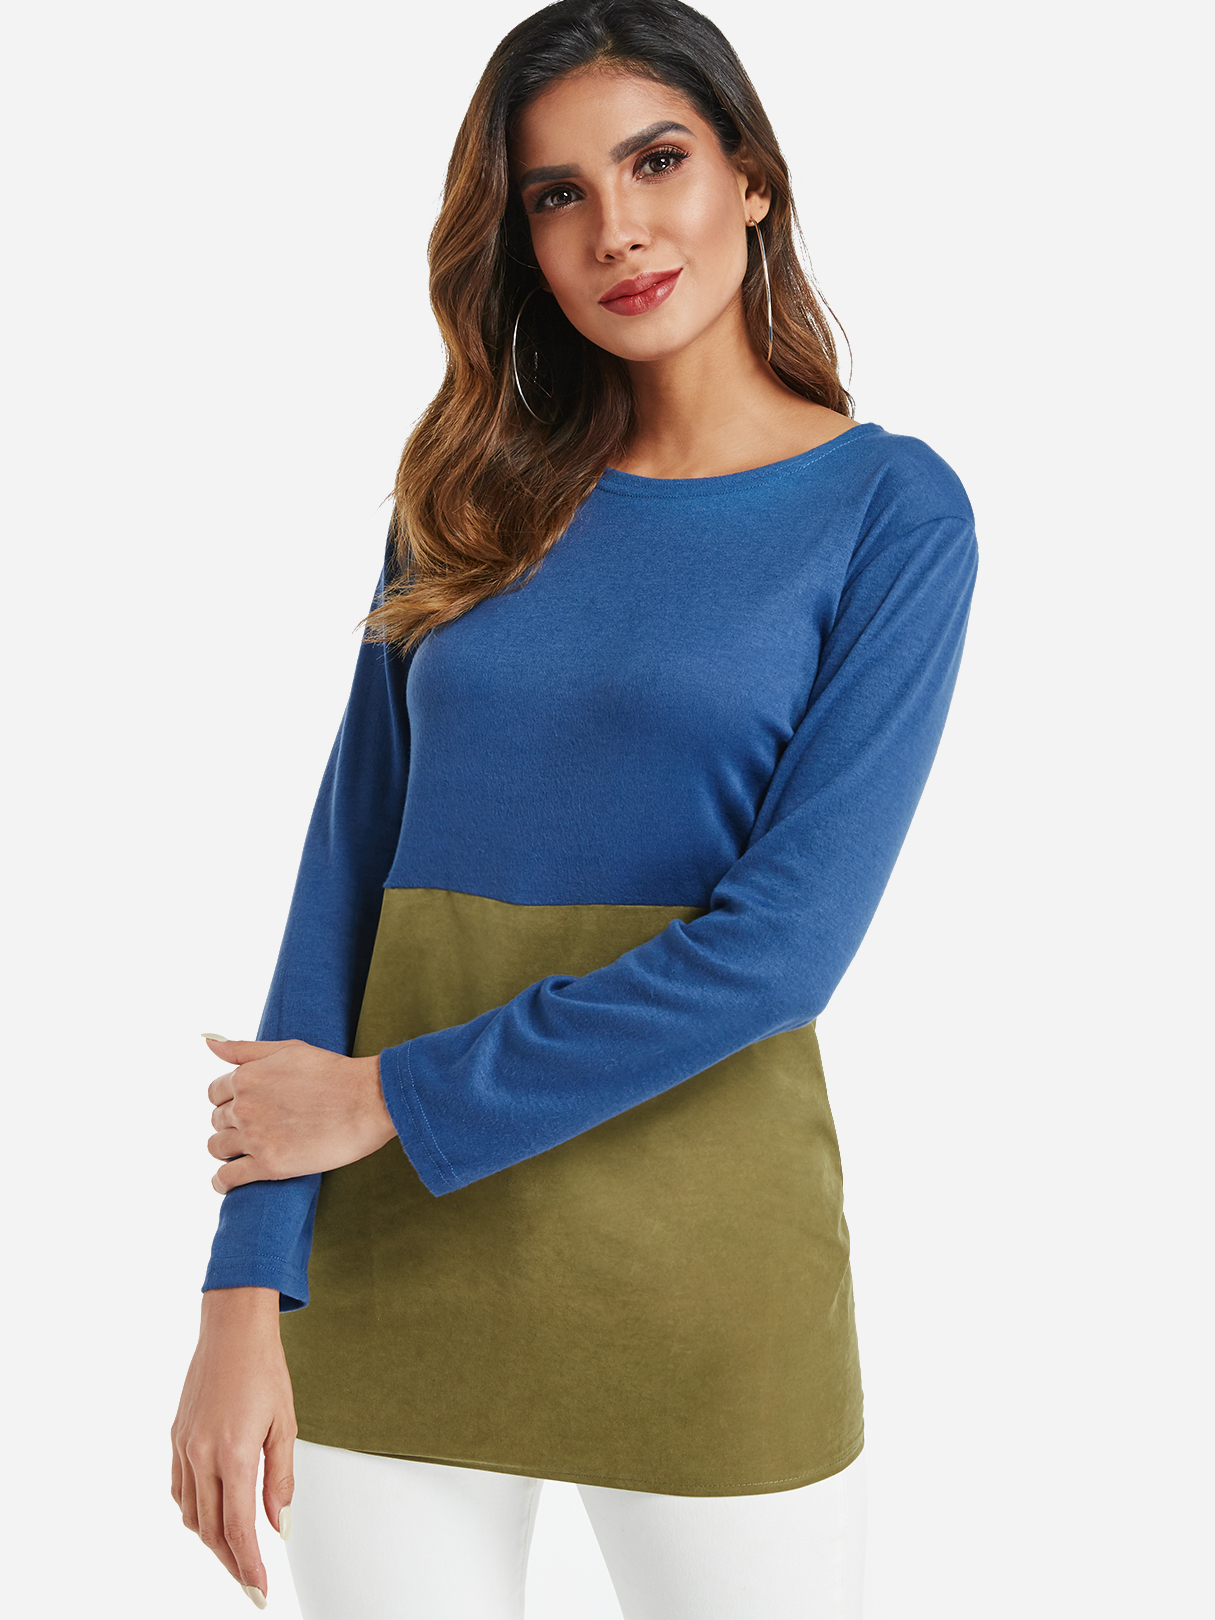 Blue and Green Colorblock Tee, Color block